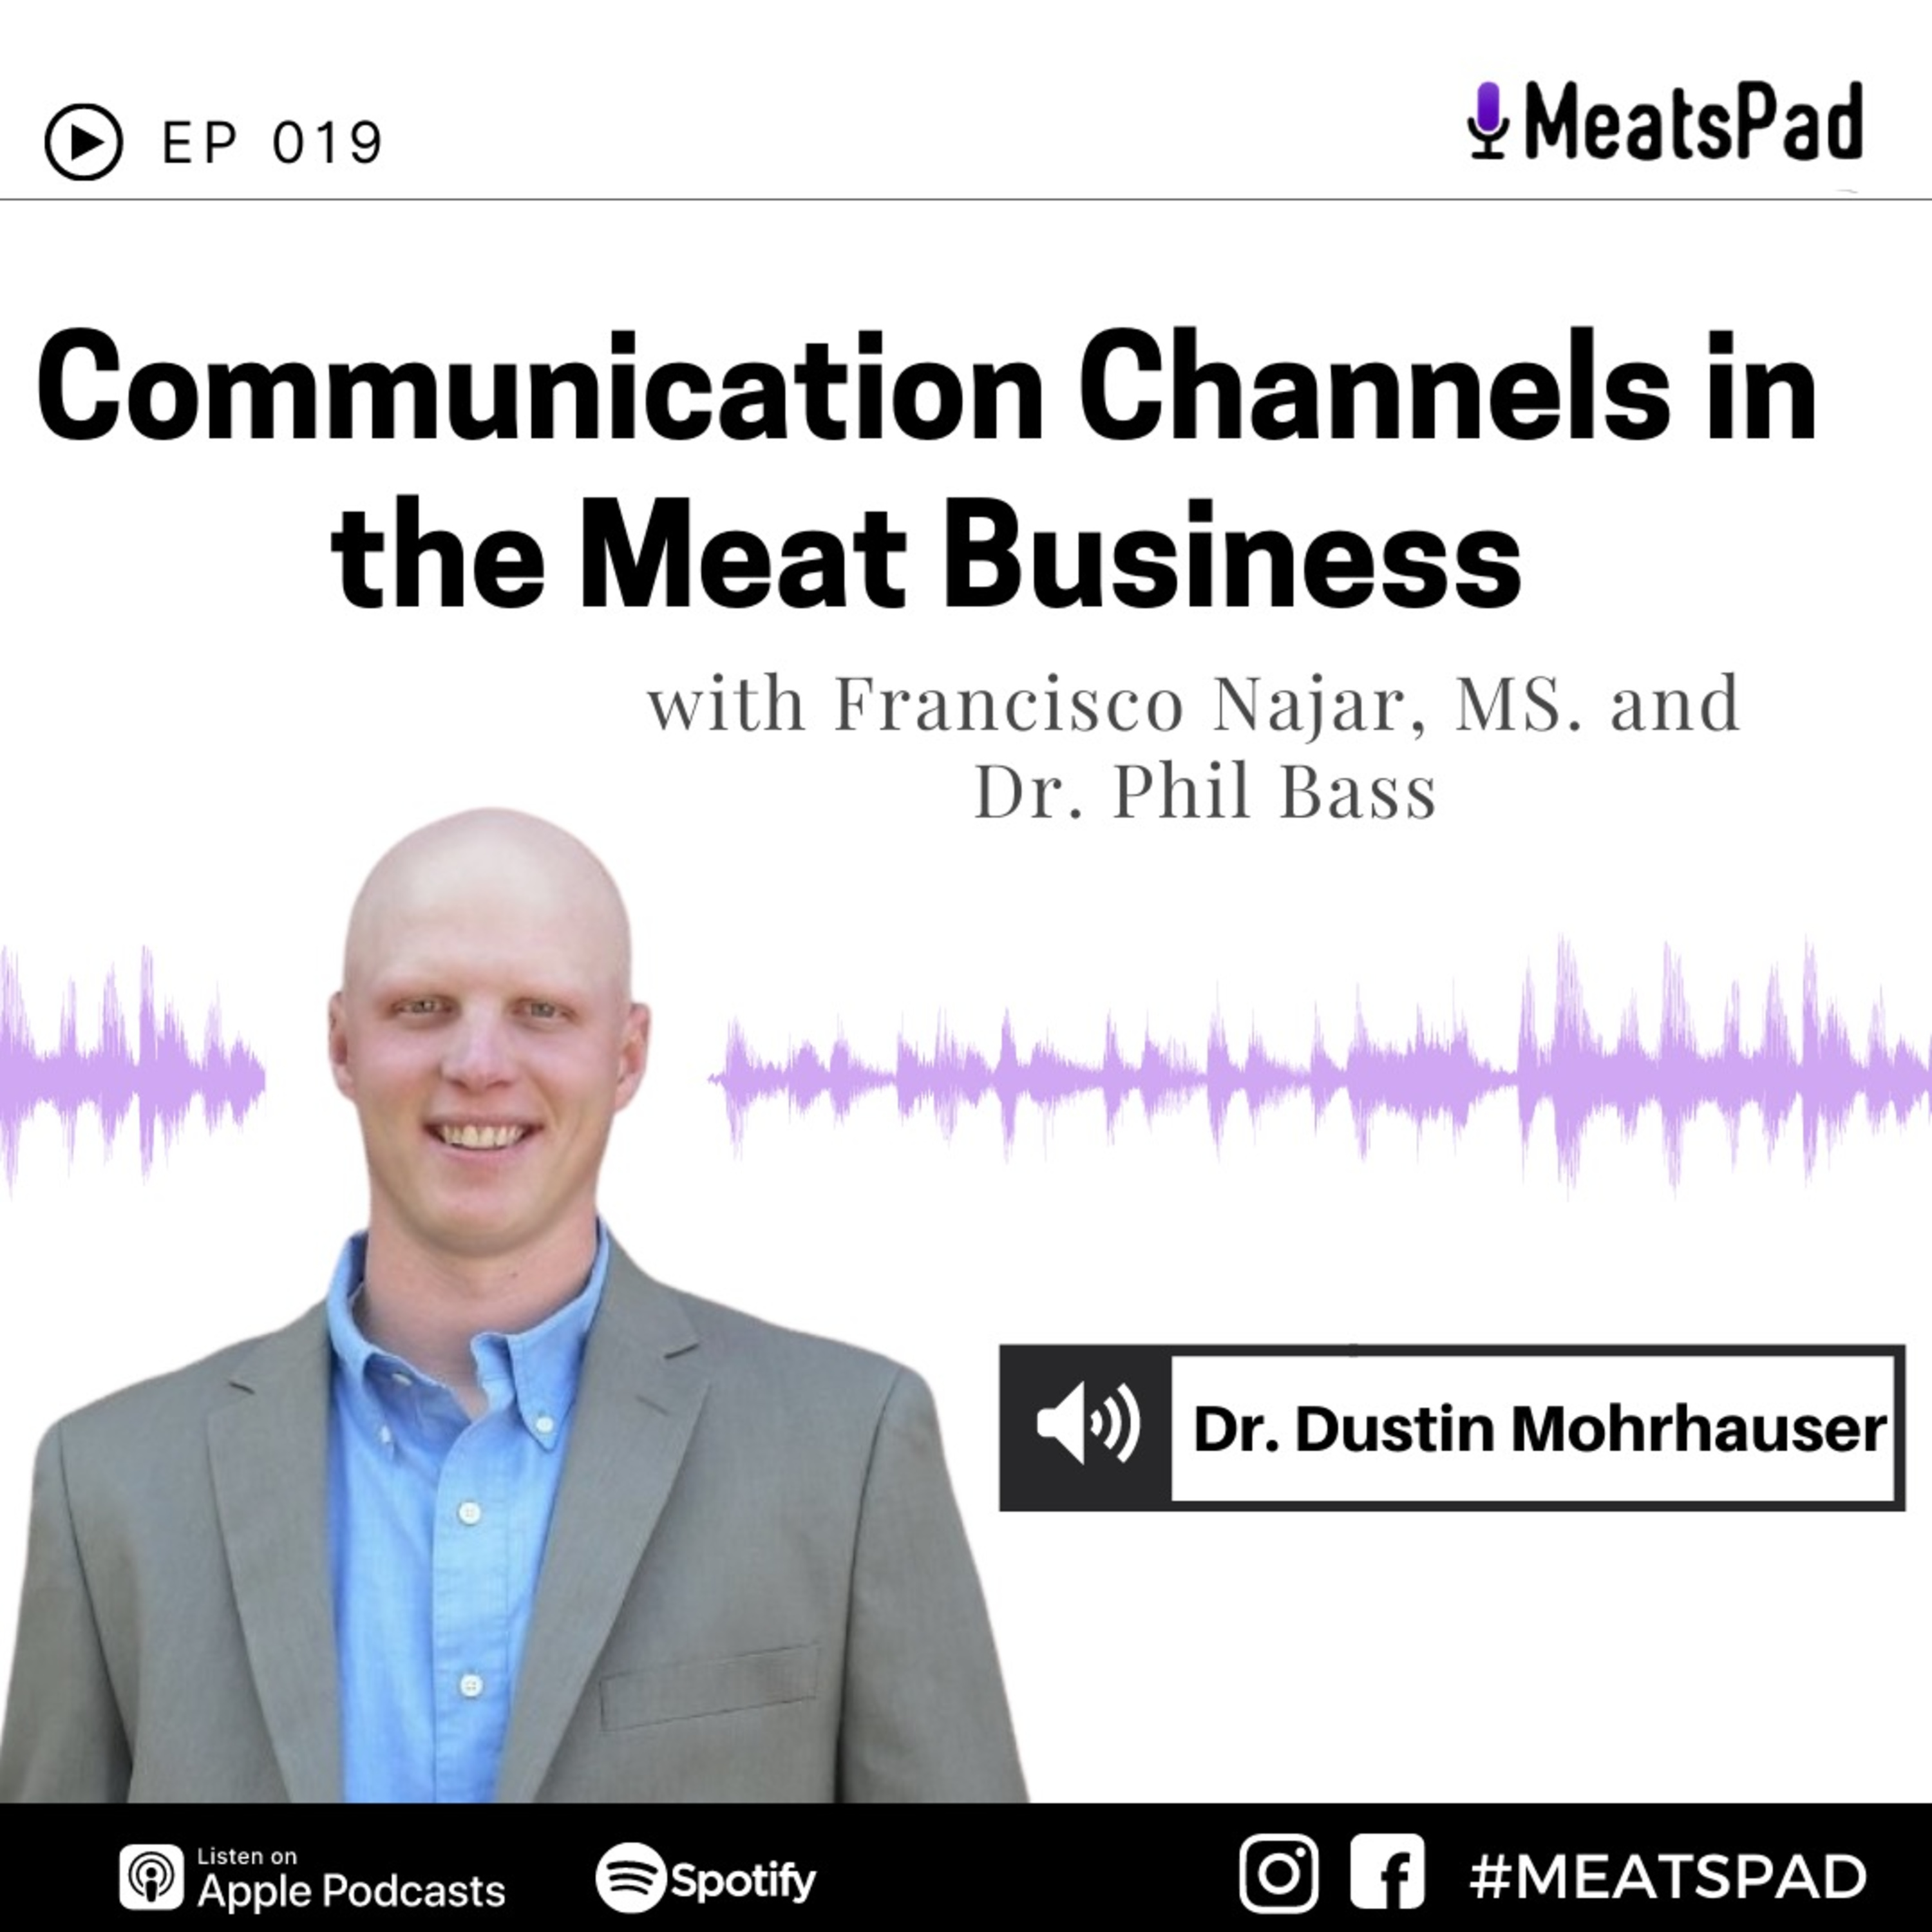 Communication channels in the meat business - Dr. Dustin Mohrhauser